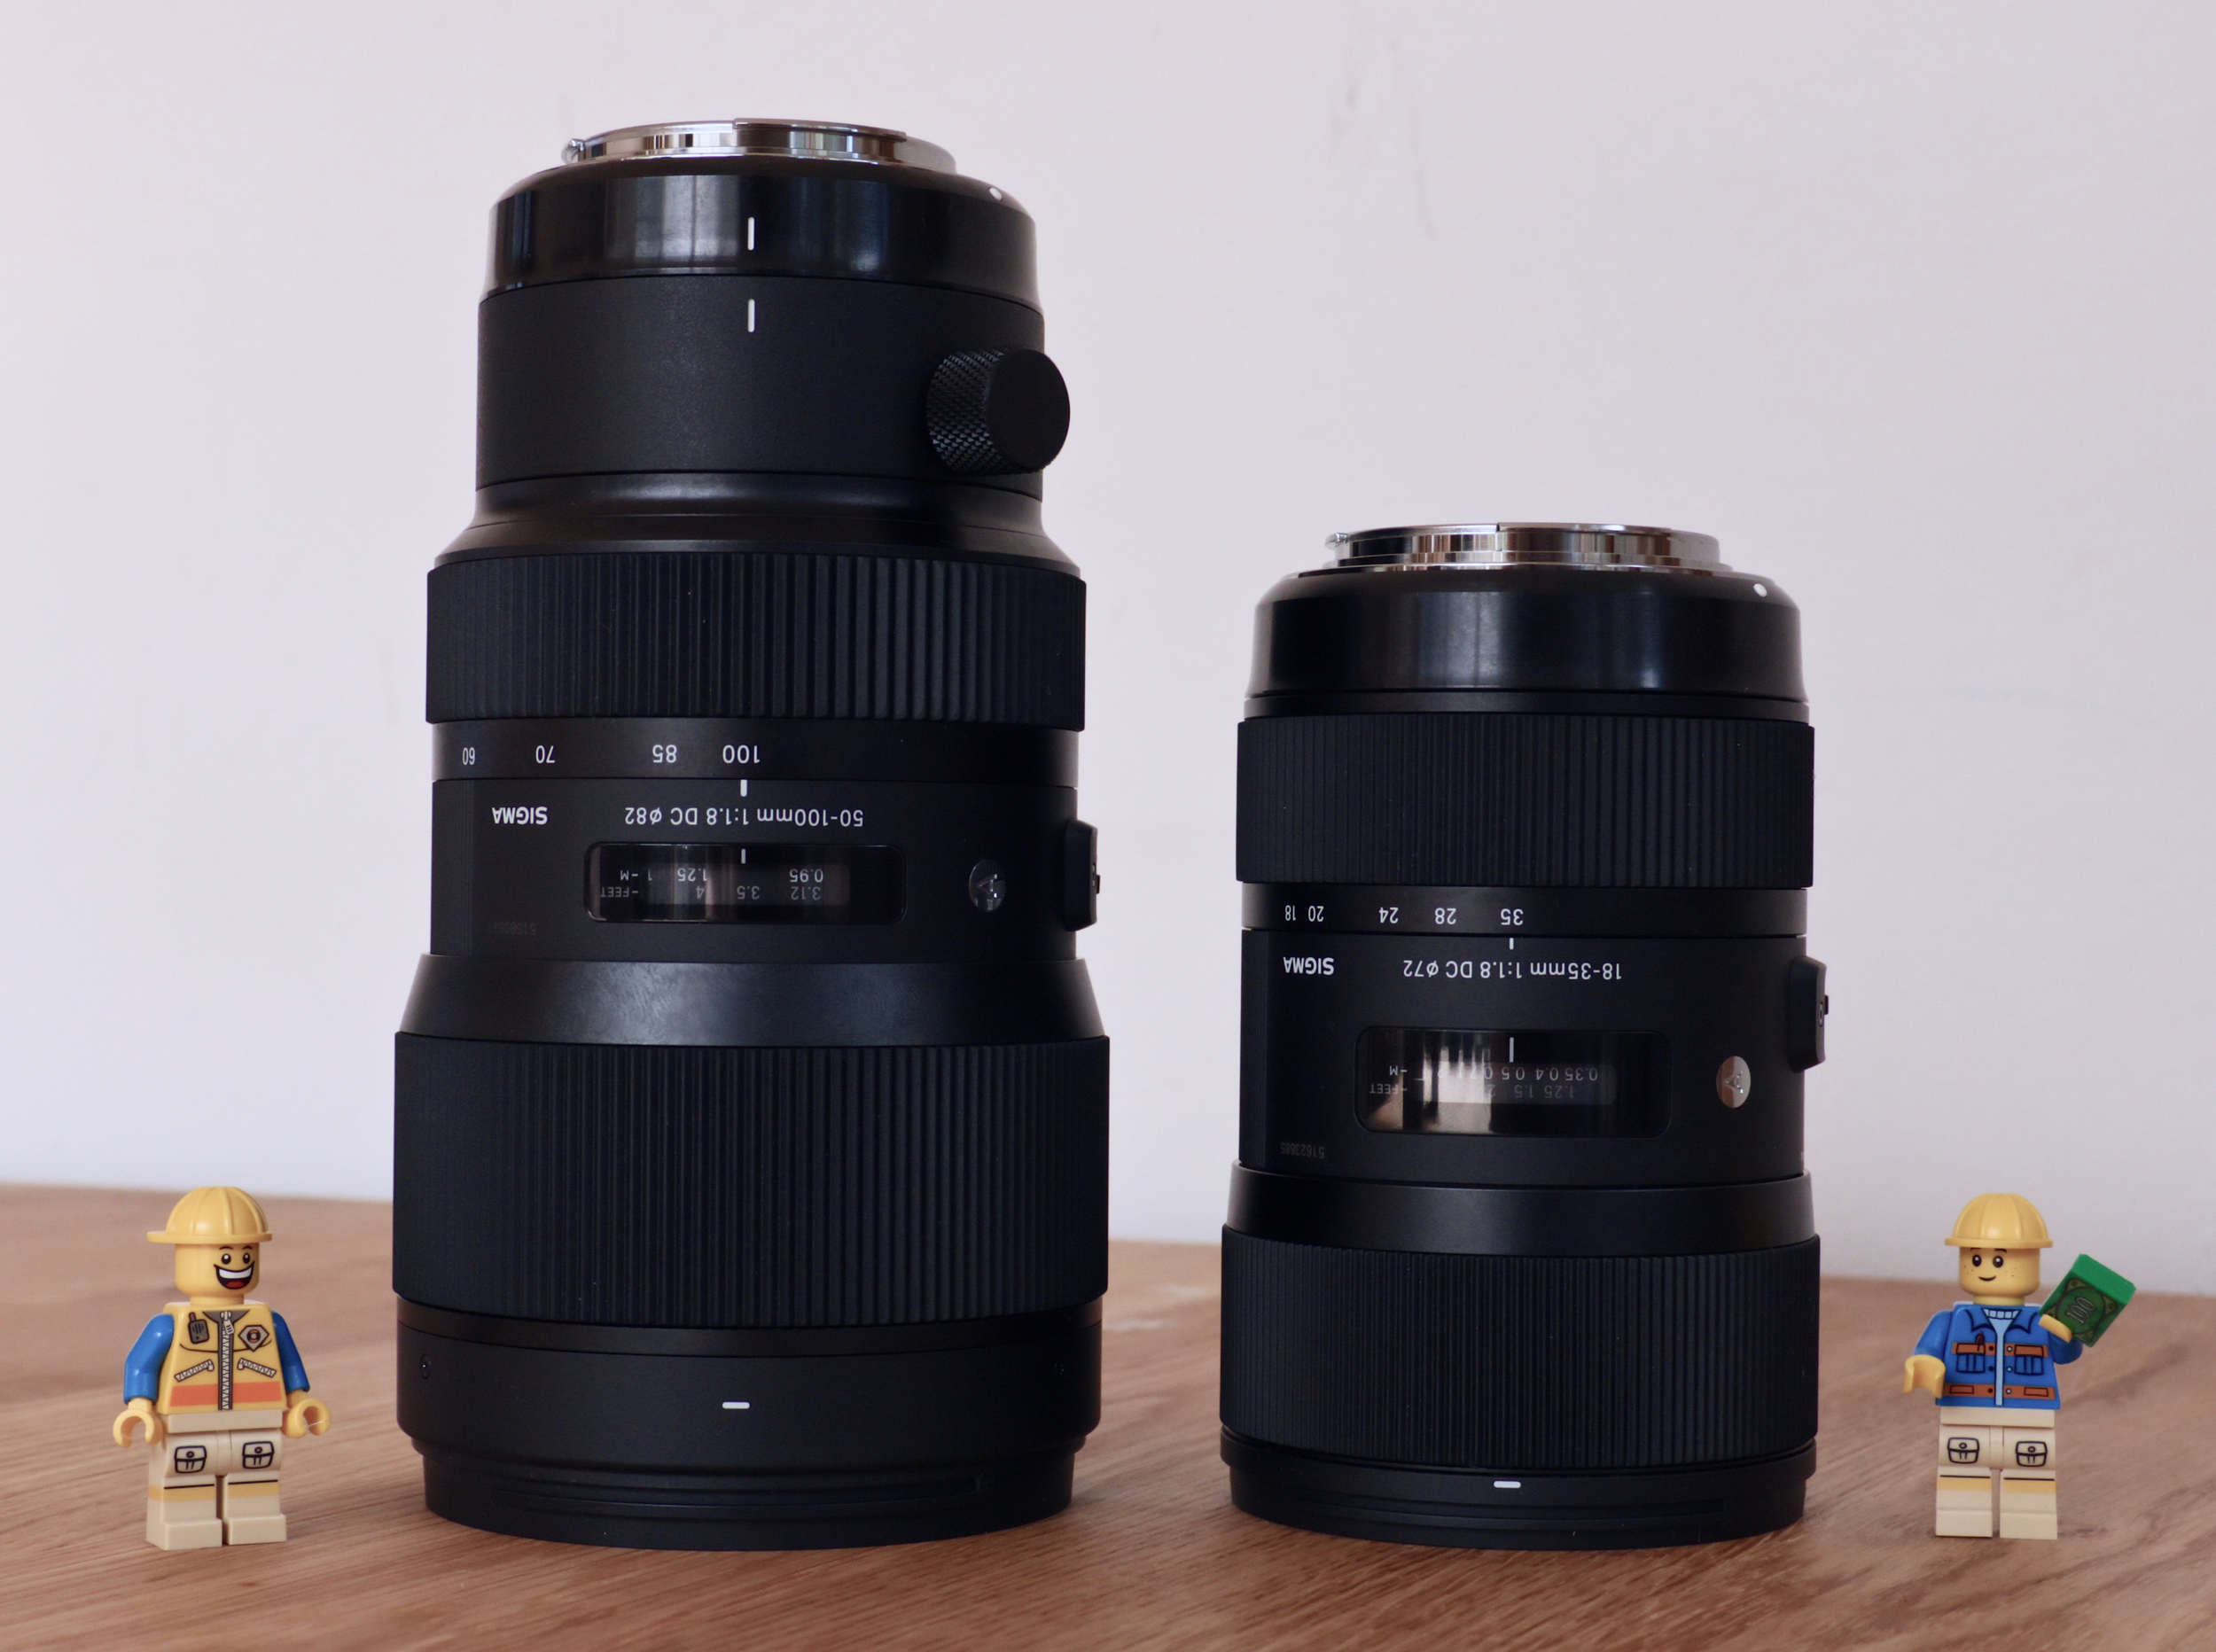 The 50-100mm f/1.8 ART (left) next to its shorter sibling the 18-35mm f/1.8 ART (right)